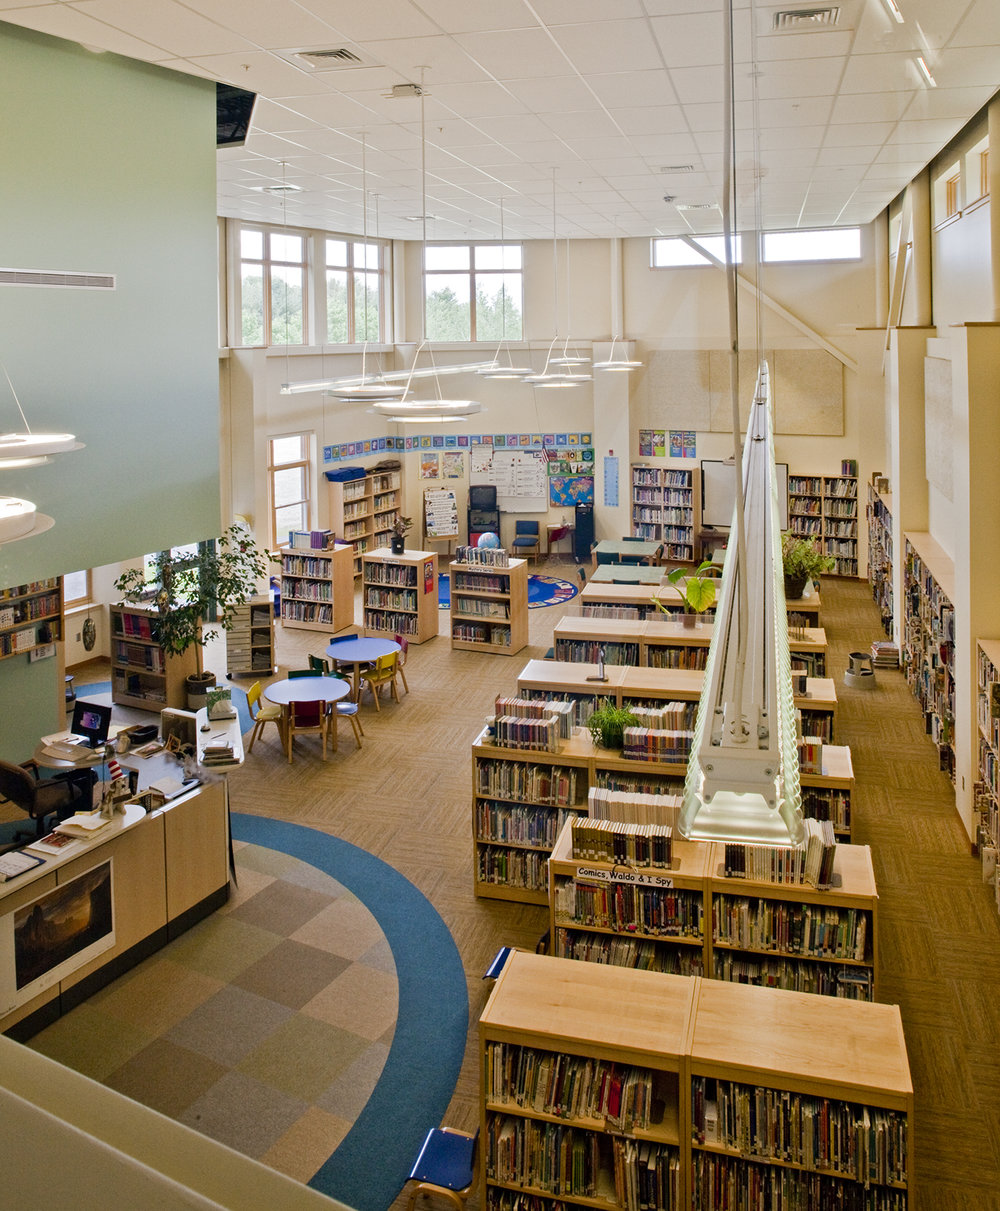 A two-story library captures daylight and can be viewed from multiple angles from surrounding spaces.